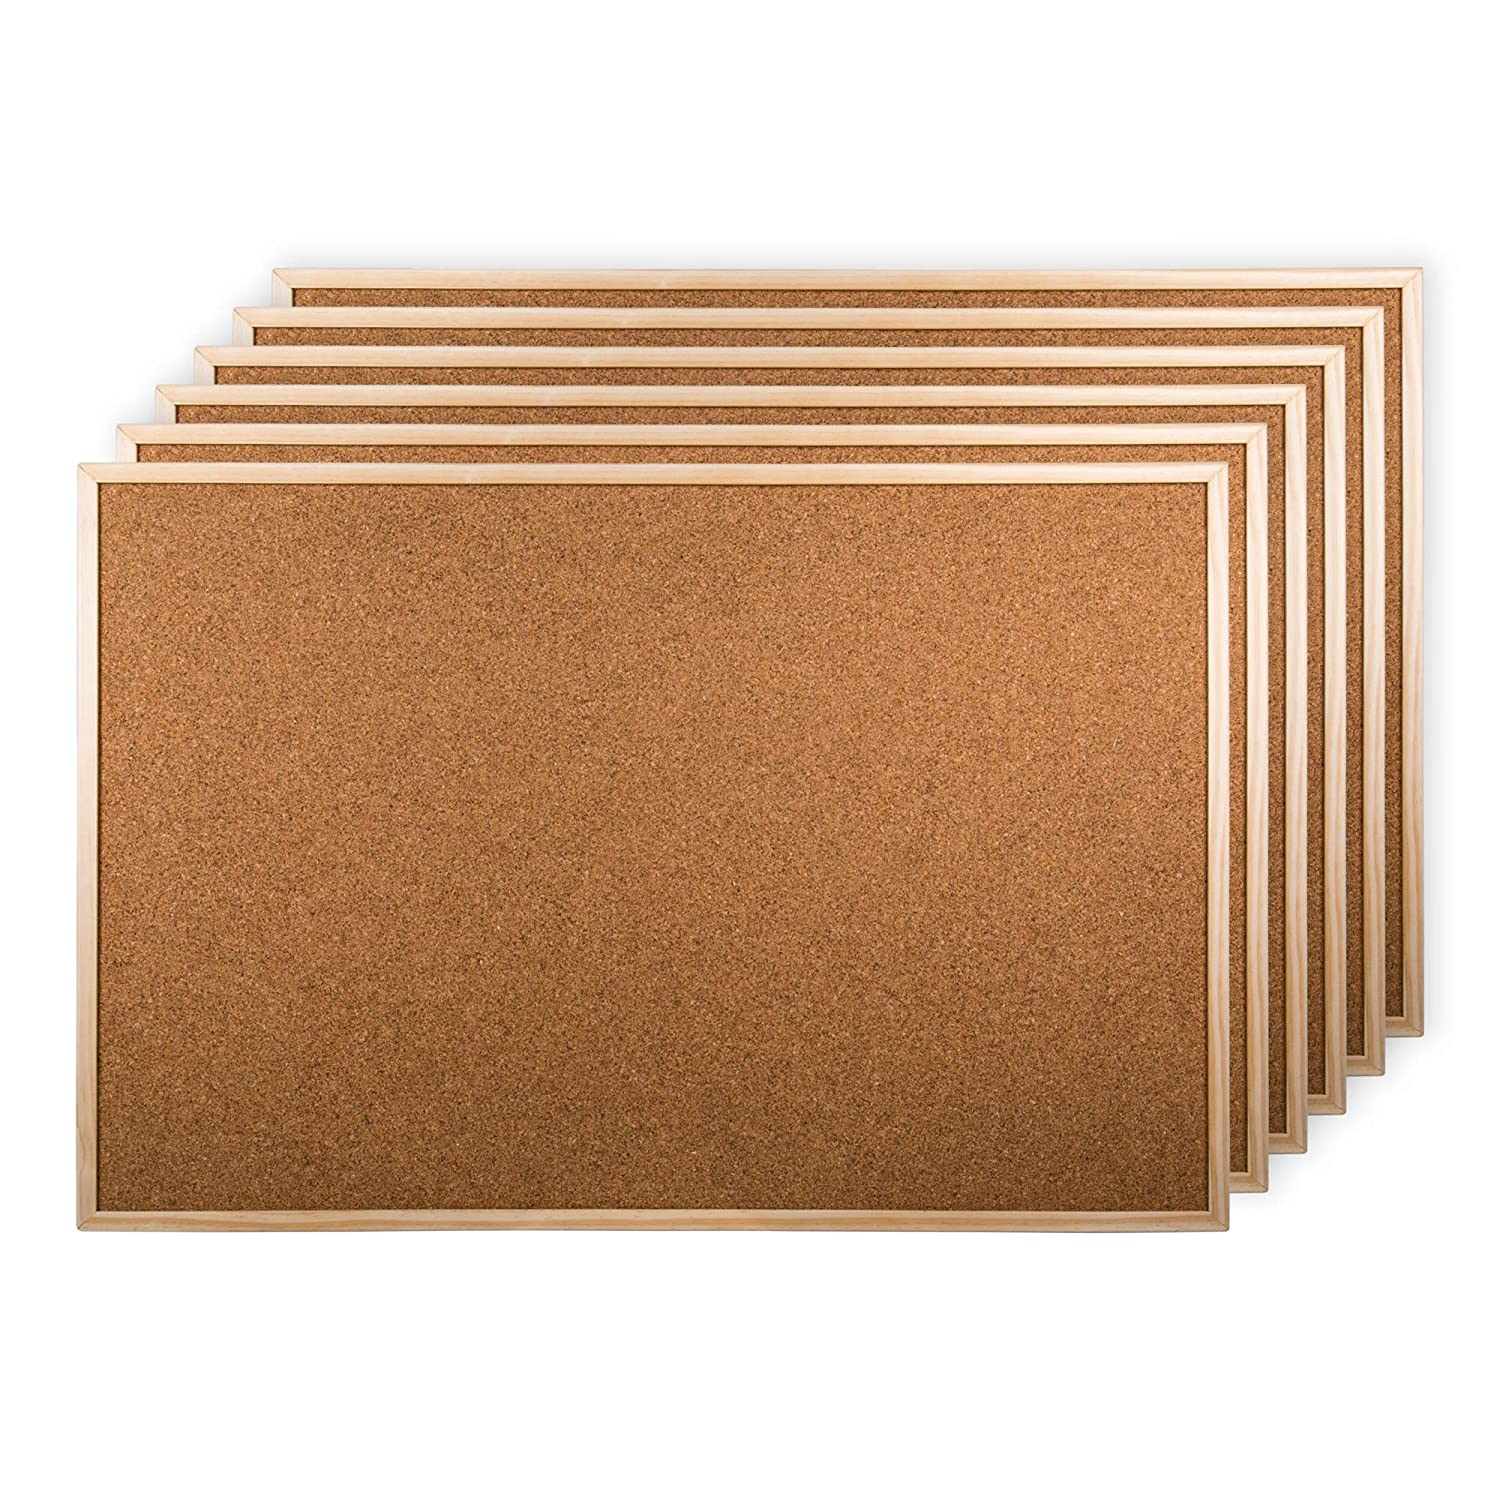 Office Works, Cork Board, Pack of 6, 17 x 23 inches, Beige